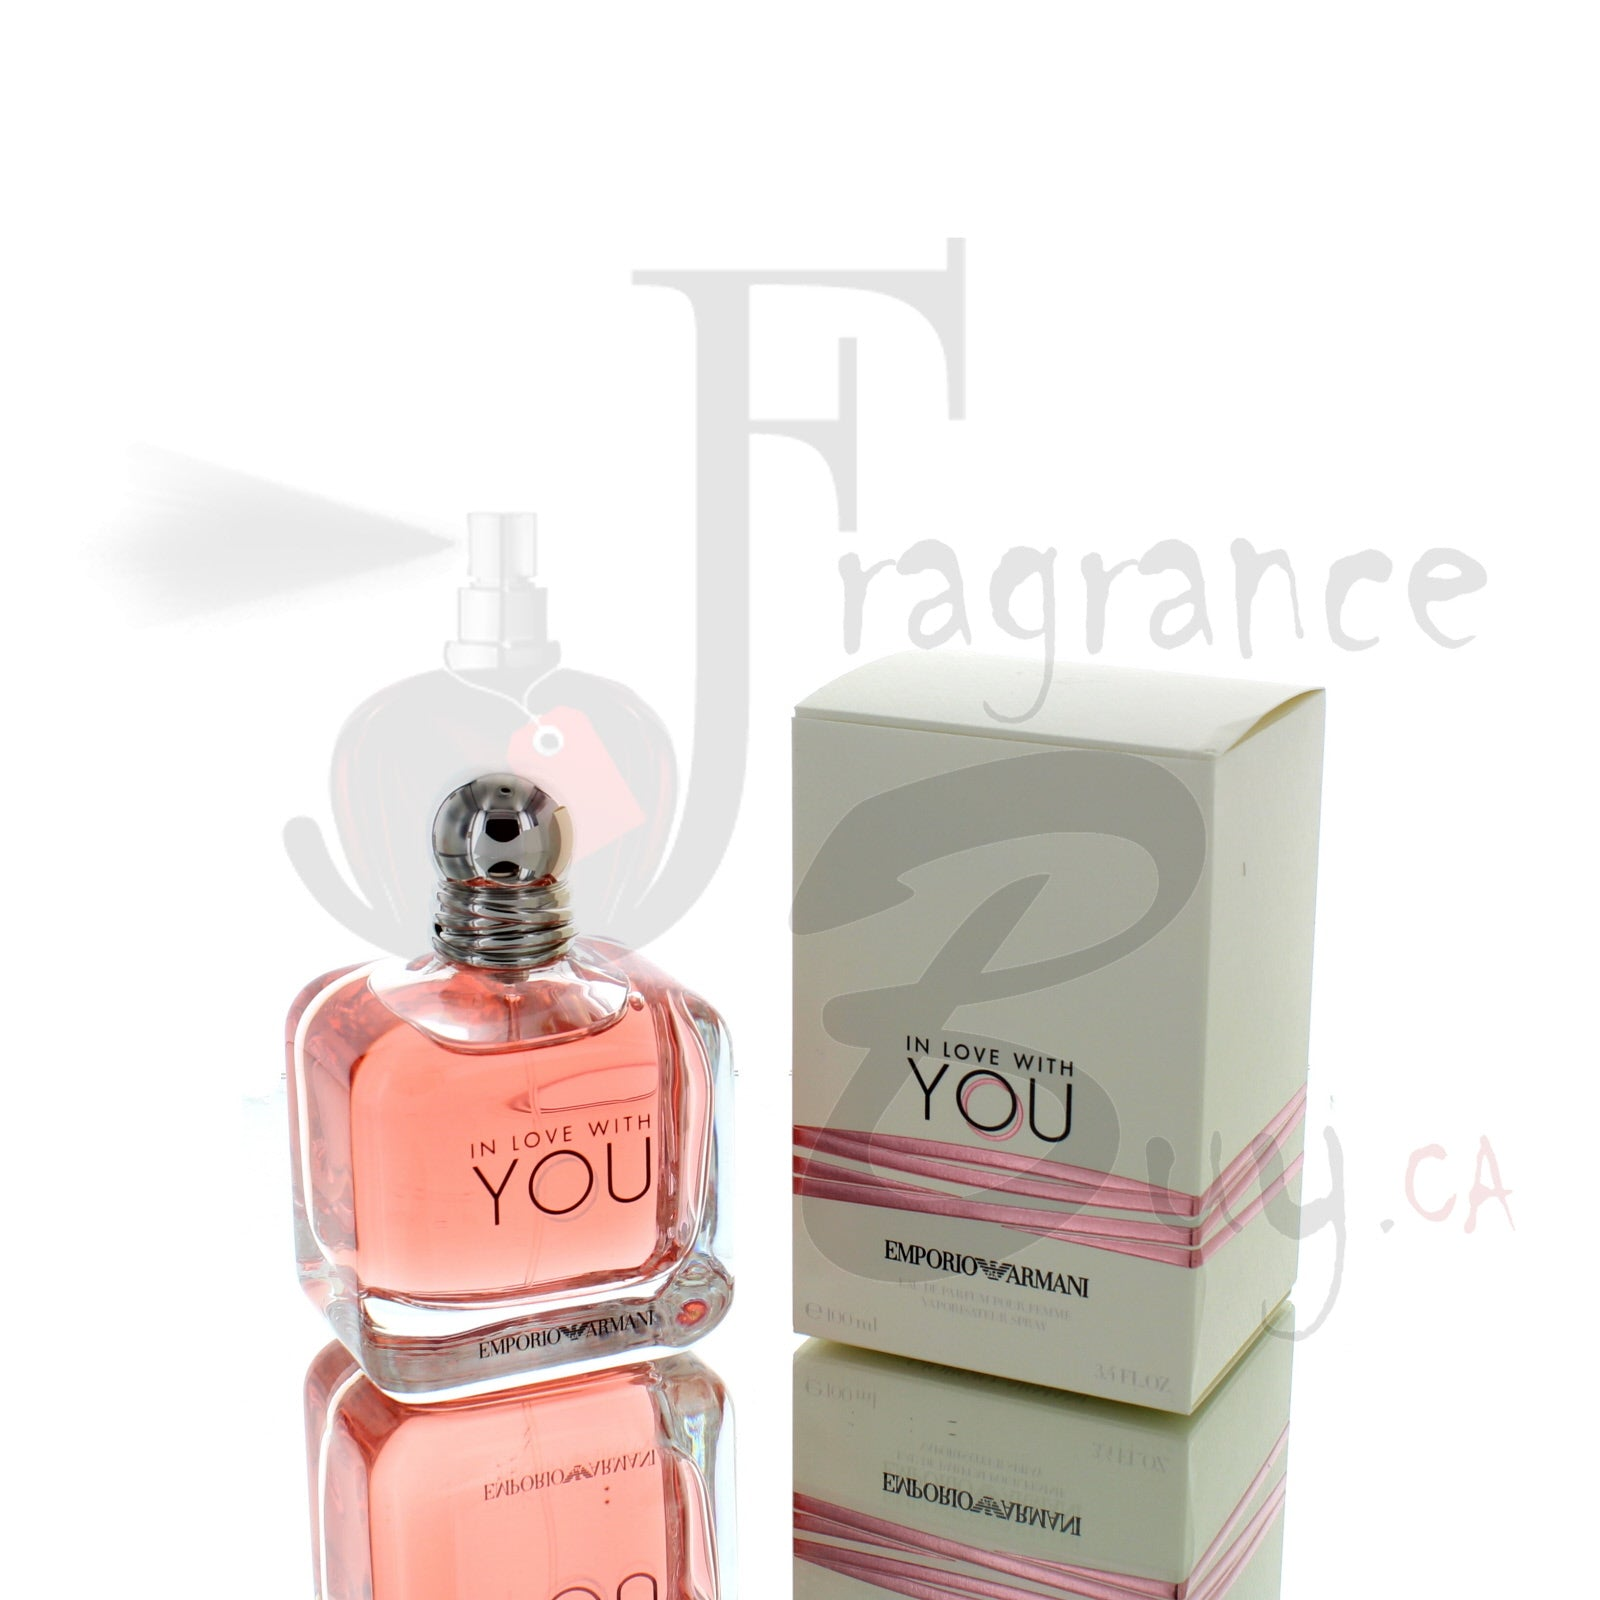 Emporio Armani In Love With You (2019) For Woman